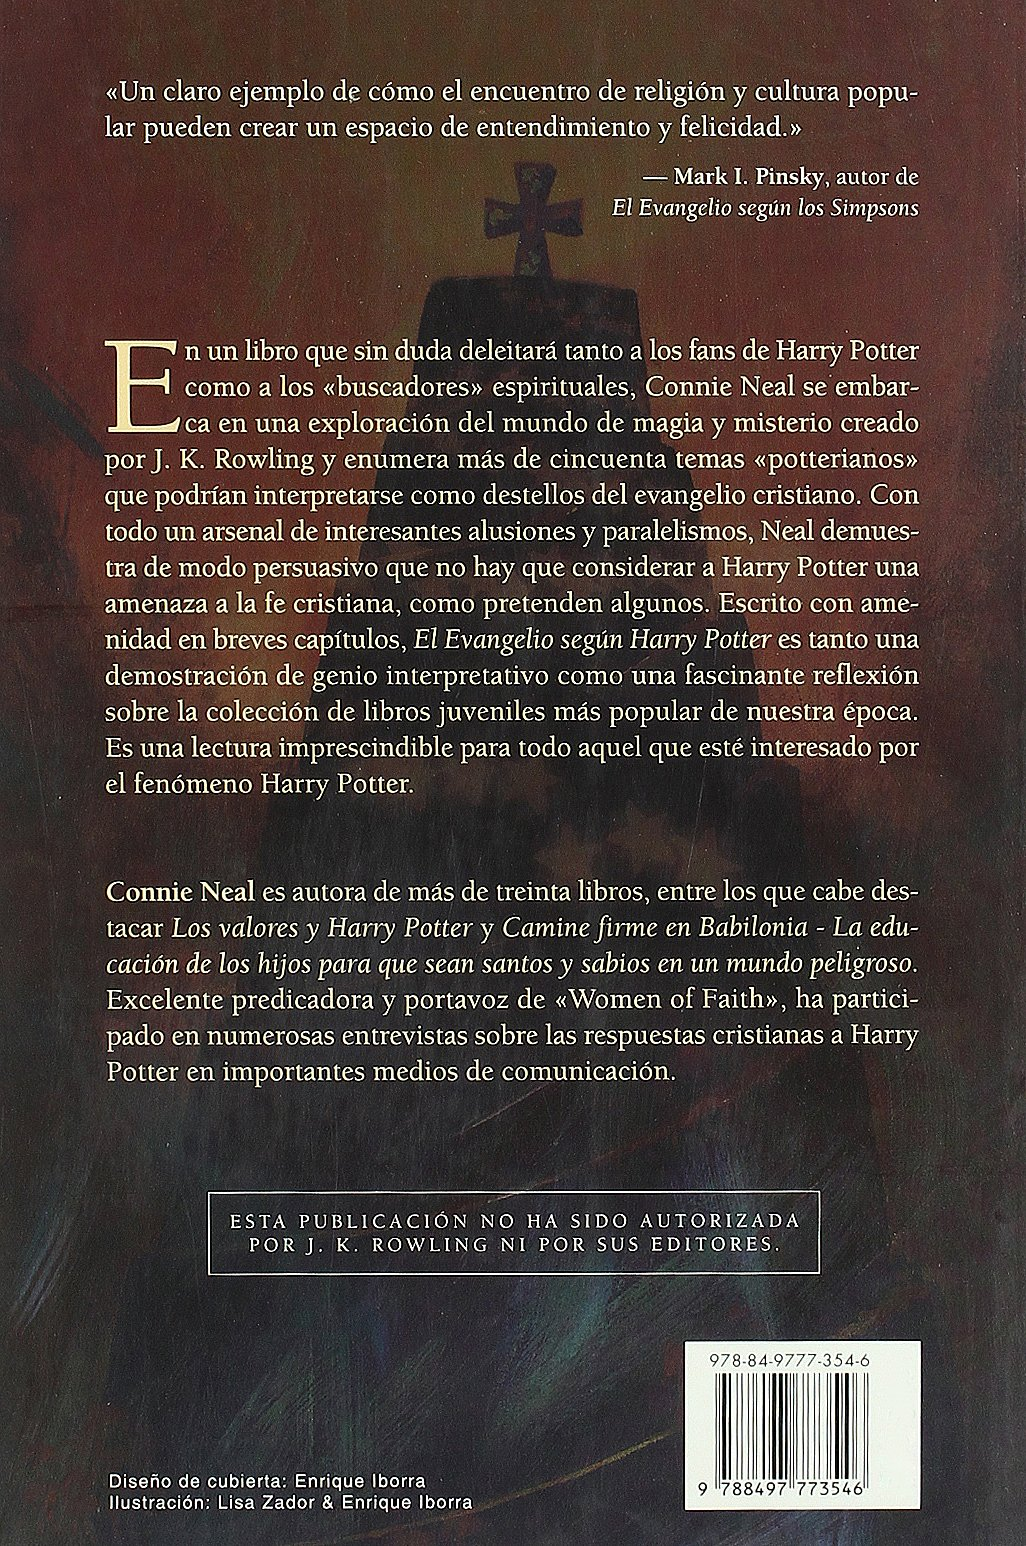 Amazon.com: El Evangelio Segun Harry Potter/ the Gospel According to Harry Potter: La Espiritualidad En Las Aventuras Del Buscador Mas Famoso Del Mundo/ ...